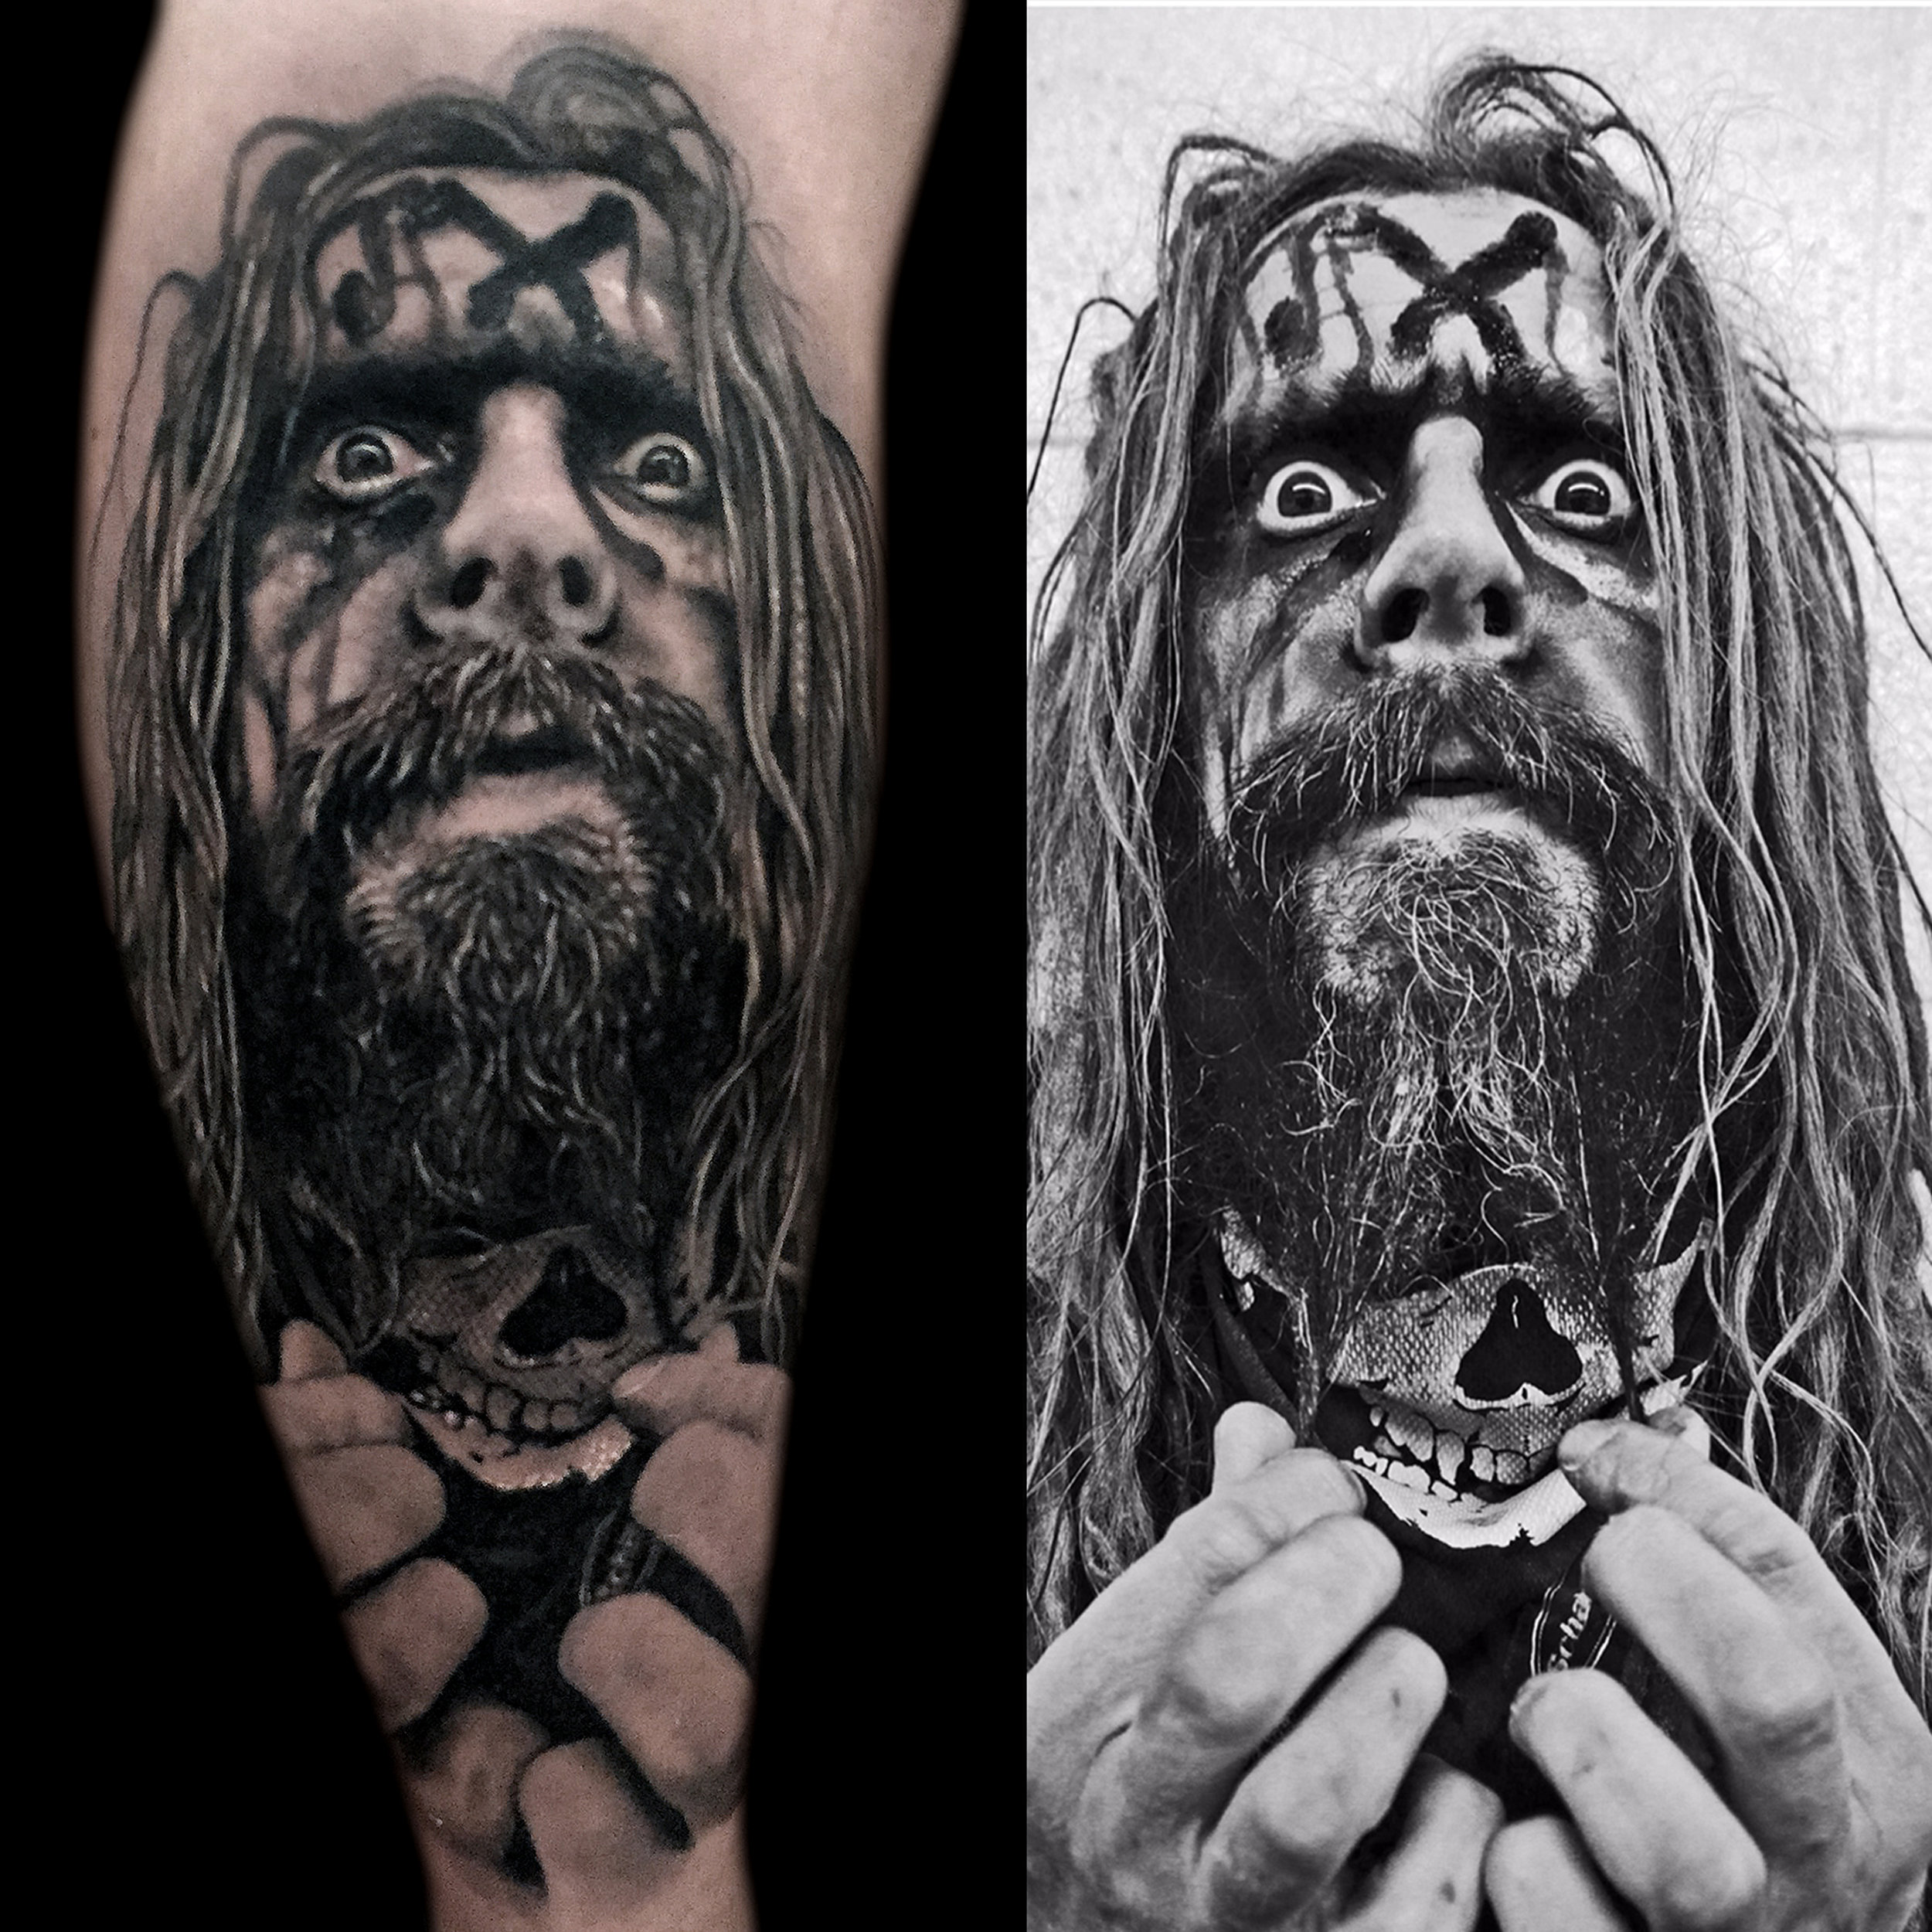 LCT Portrait BG Rob Zombie Side by Side.jpg